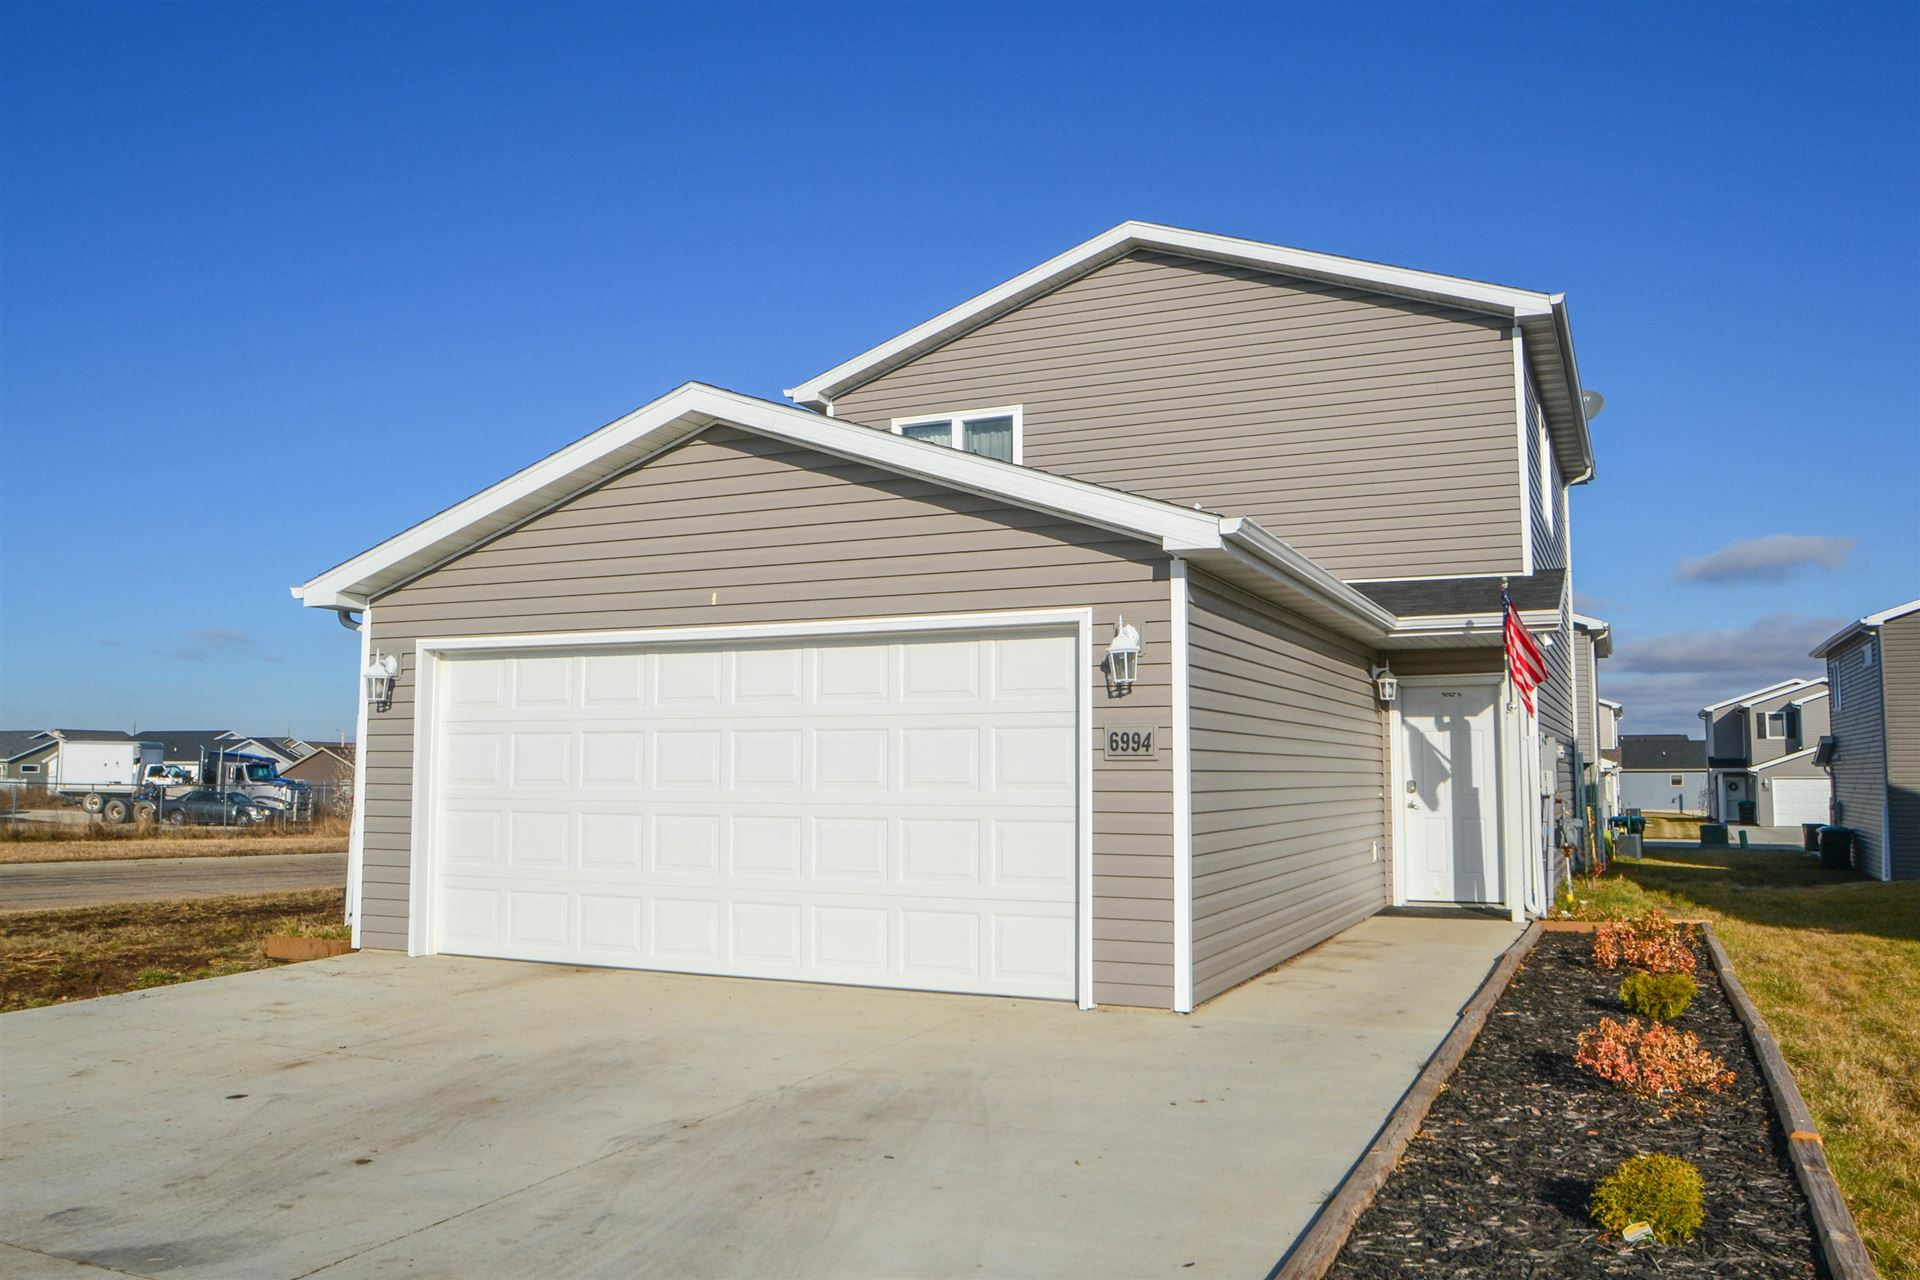 6994 Majestic Loop, Lincoln, ND 58504 - #: 406966